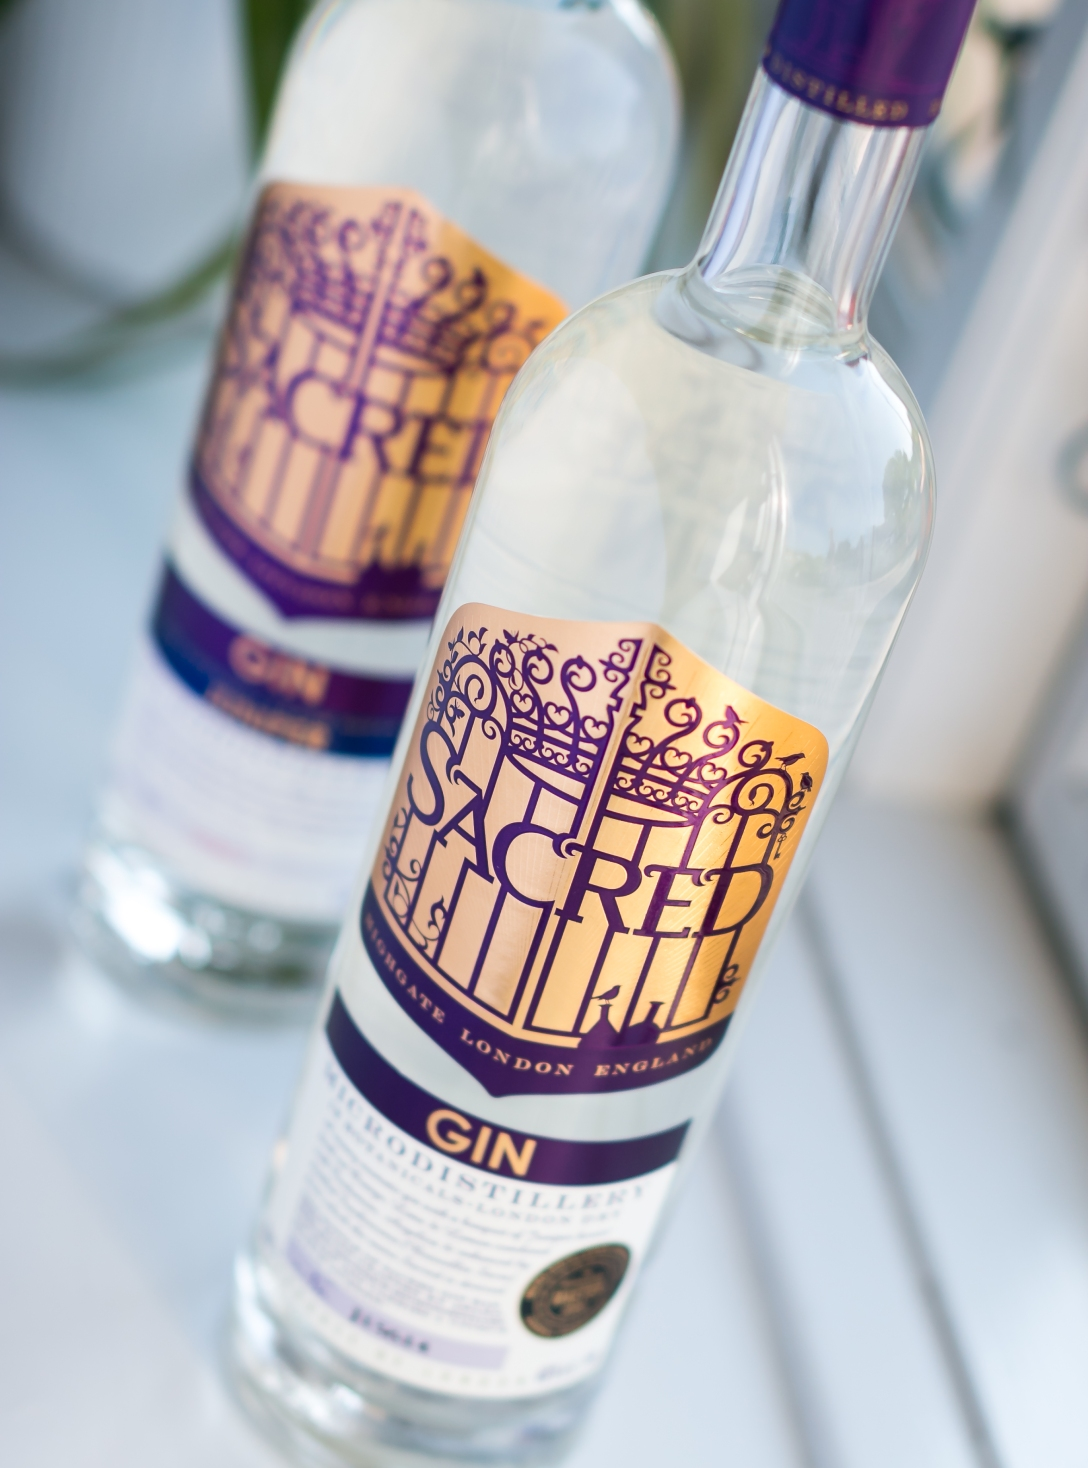 Sacred Gin. Photo by Michael Sperling.